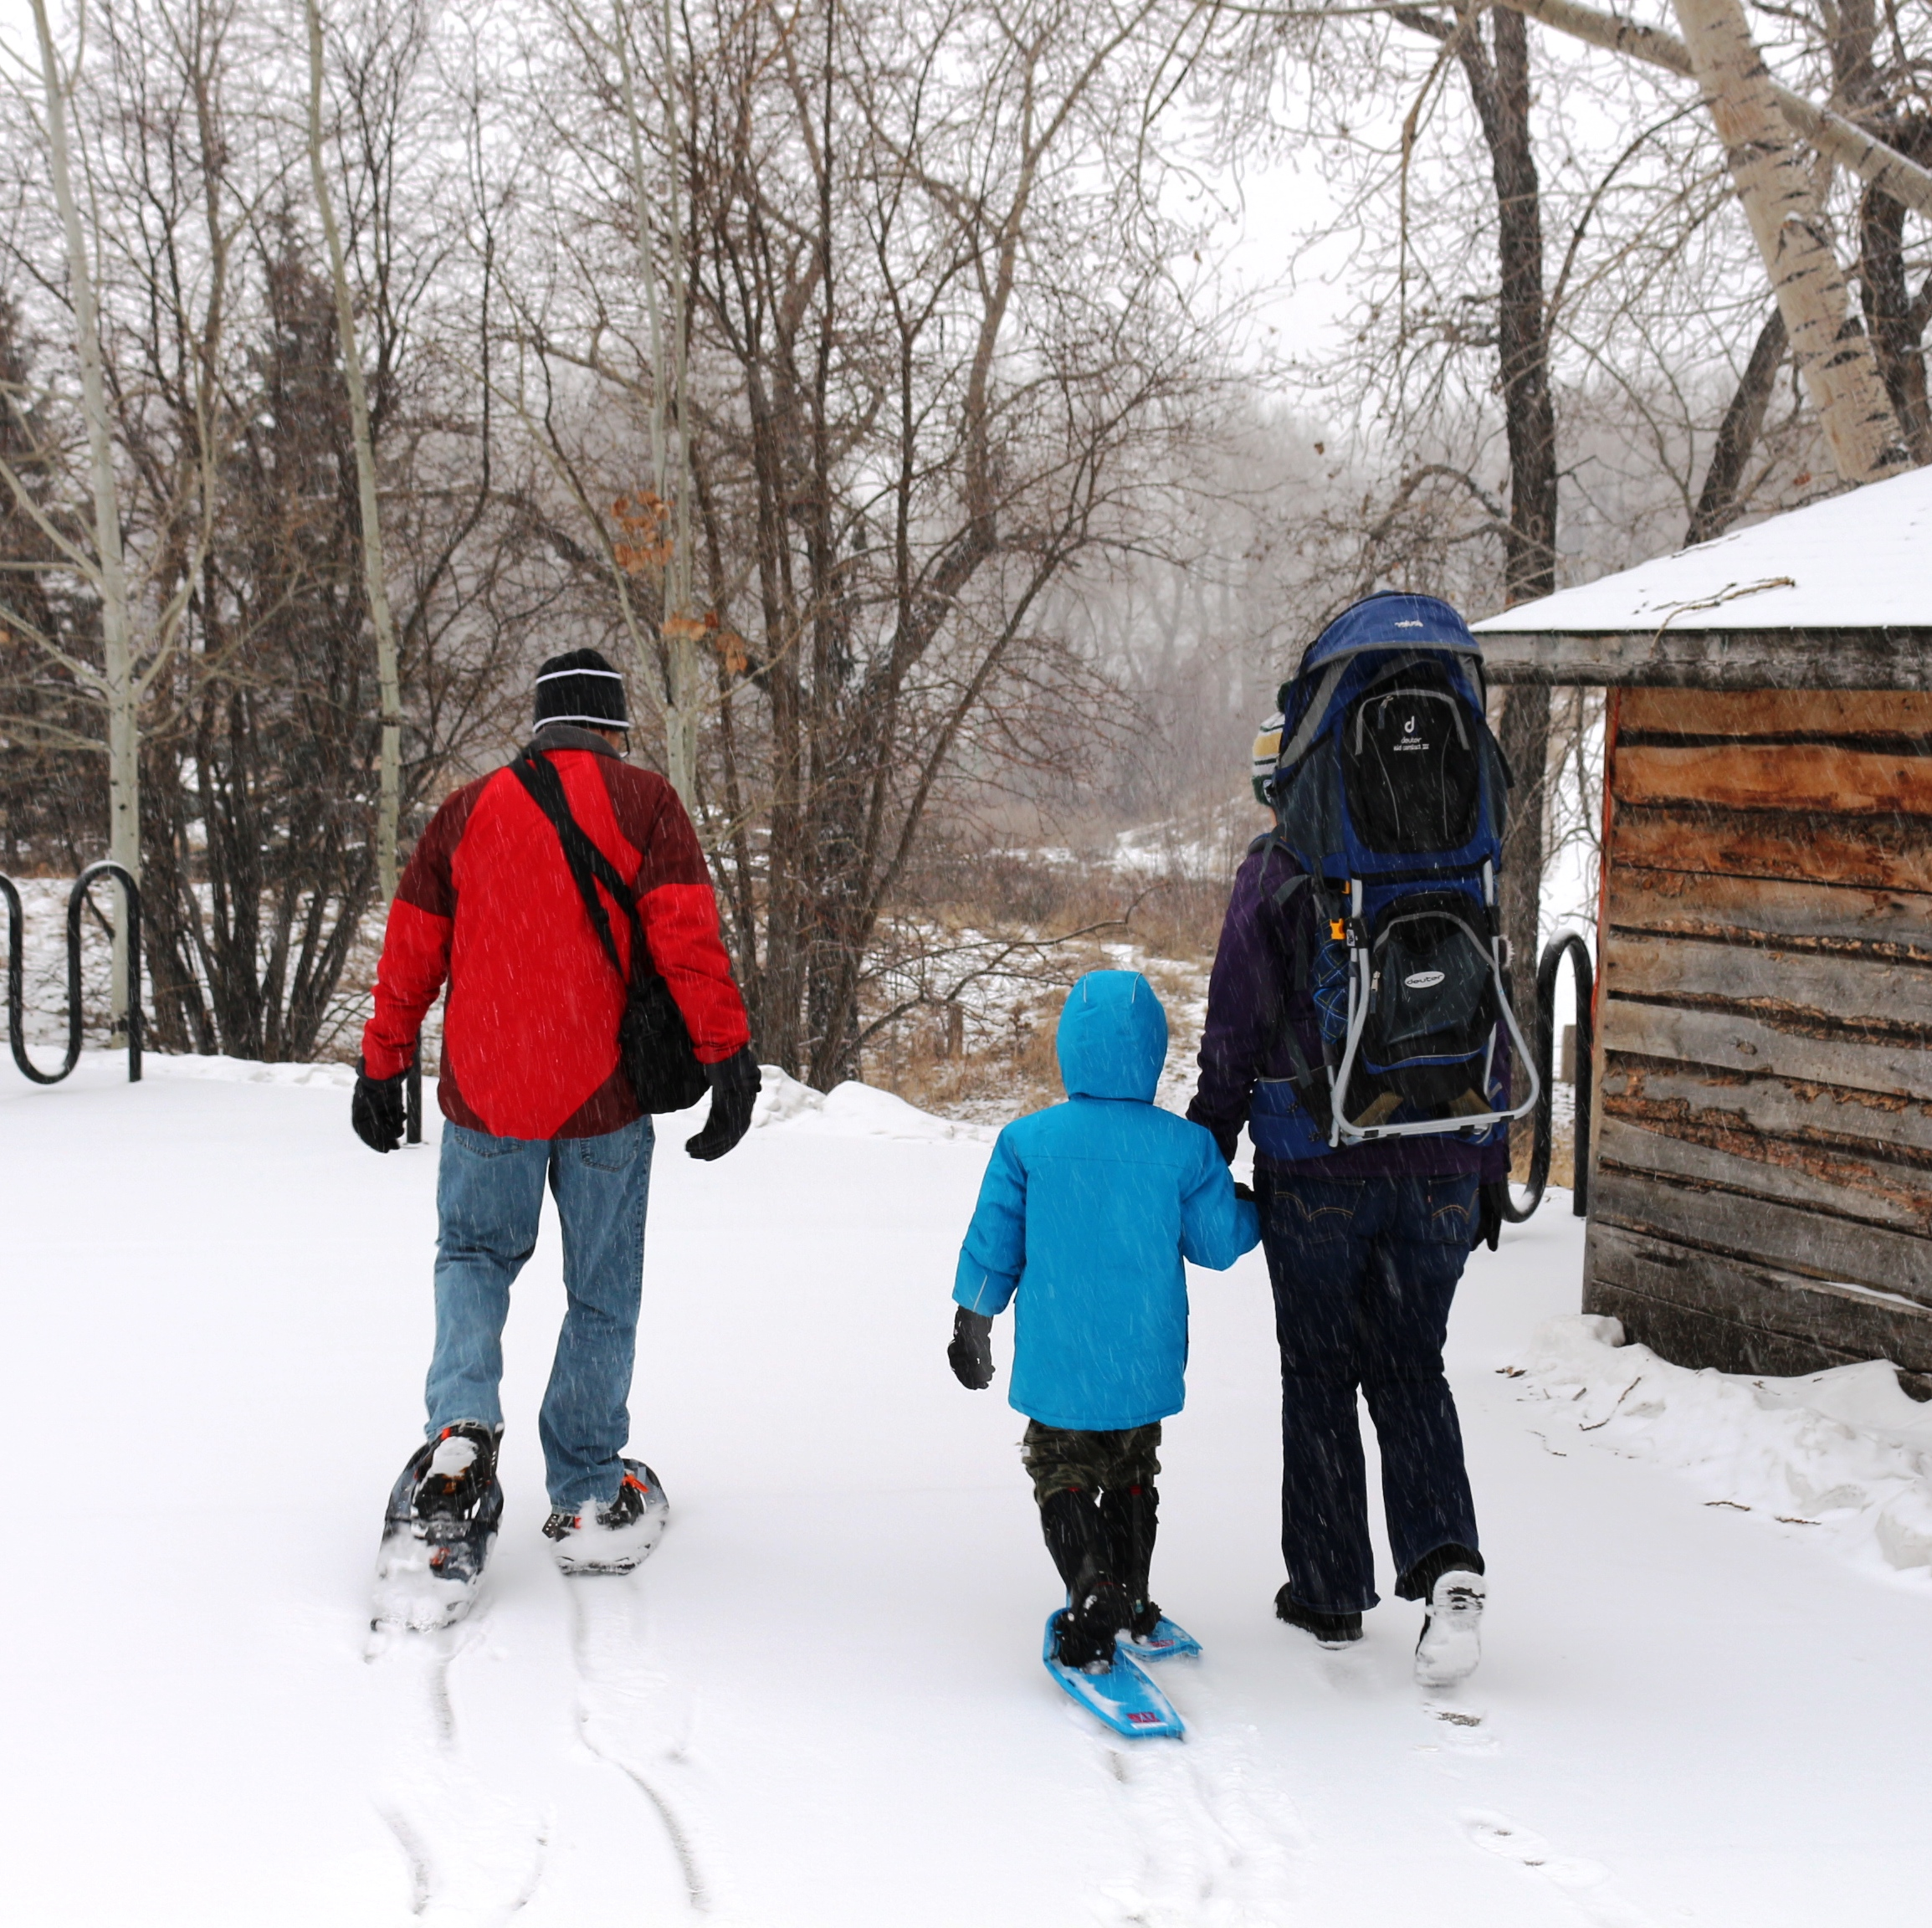 Family walks together through the snow on snowshoes